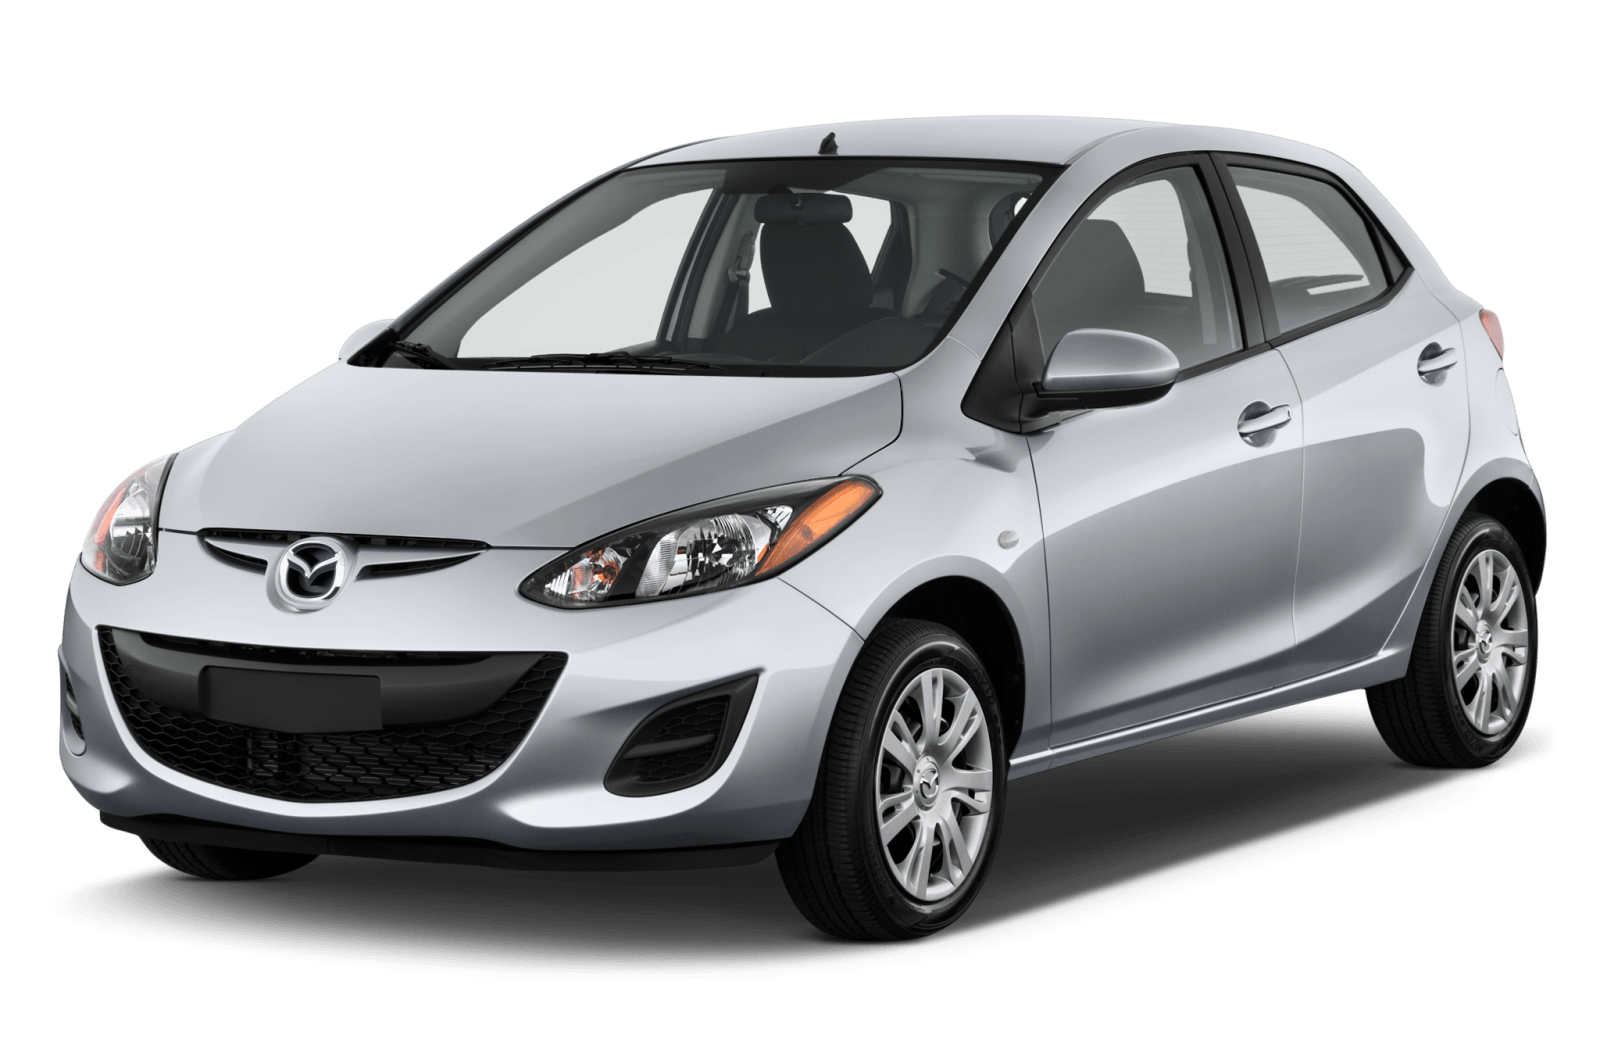 Vehicle Spotlight: 2014 Mazda 2